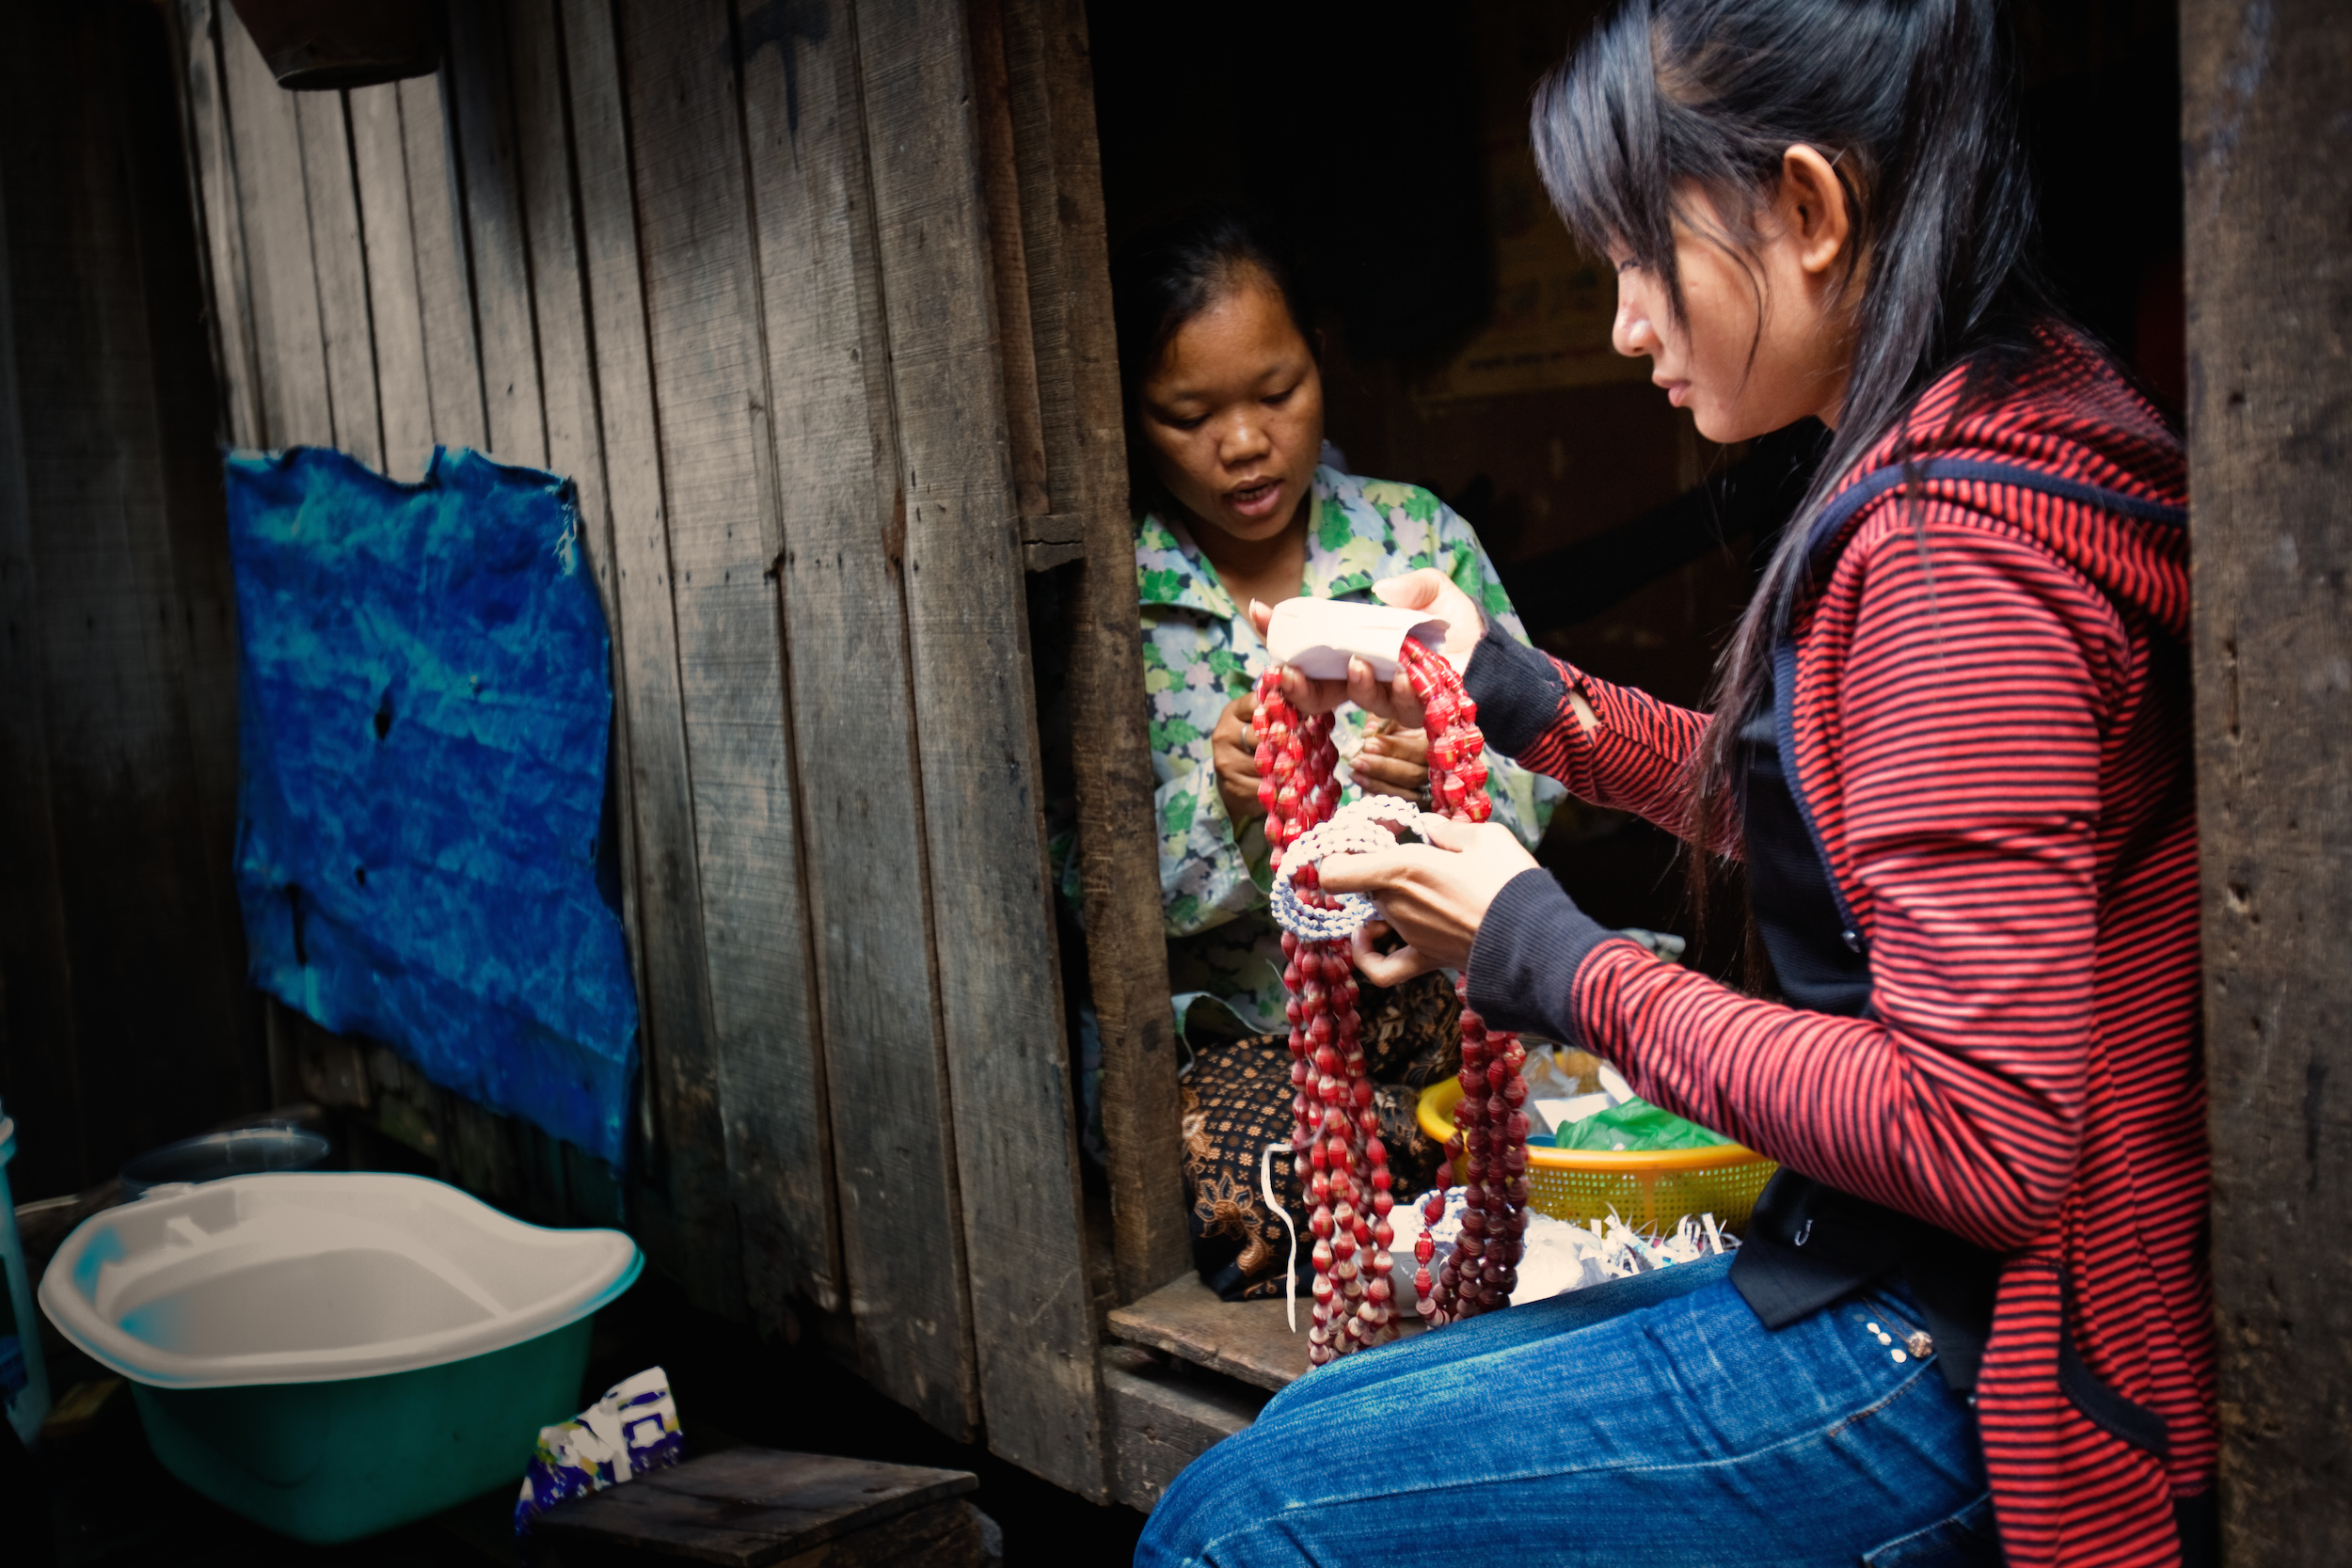 Riverkids teaches women skills such as jewellery-making, which they can do at home. Photo: Supplied.